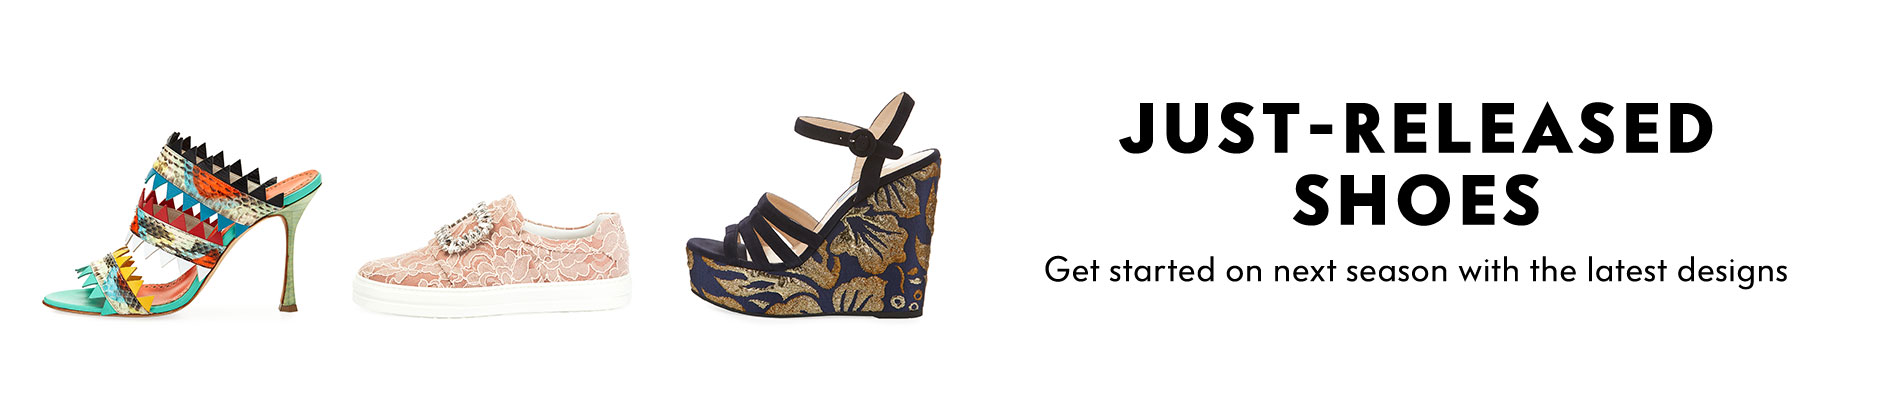 Just-Released Shoes - Get started on next season with the latest designs